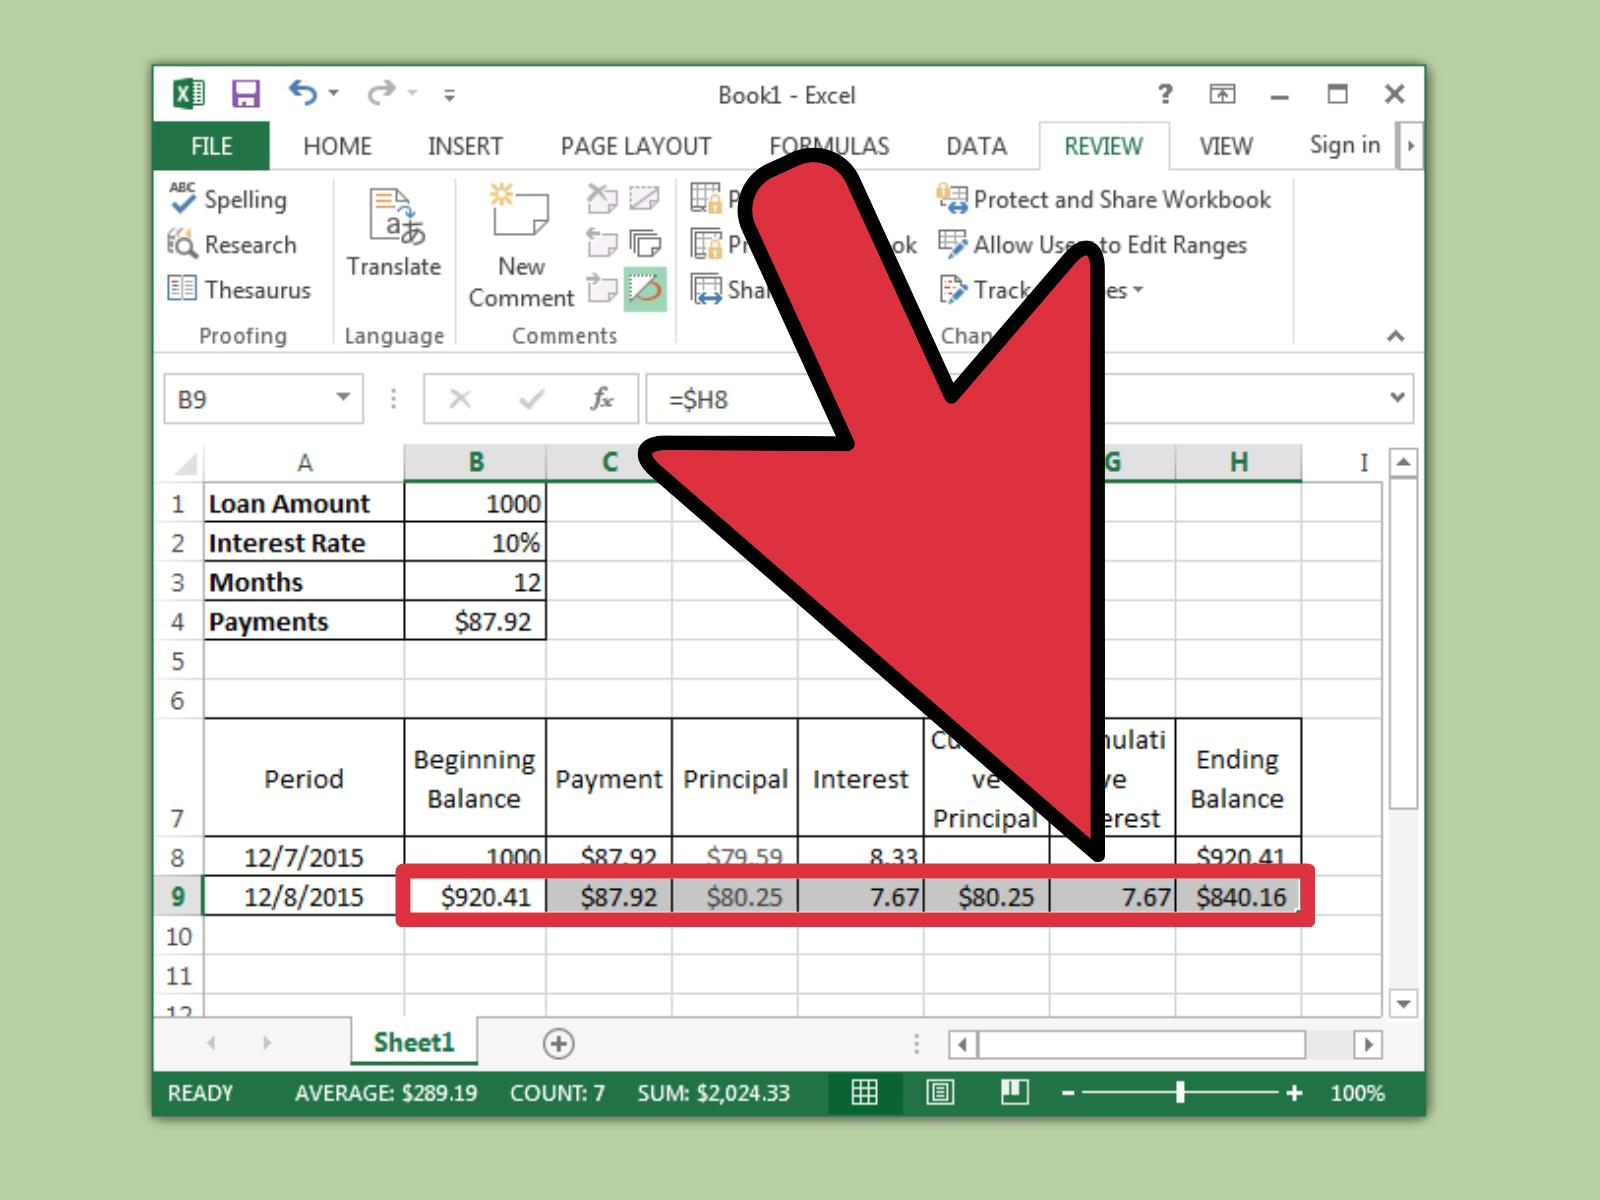 Amortization Spreadsheet Excel With How To Prepare Amortization Schedule In Excel: 10 Steps